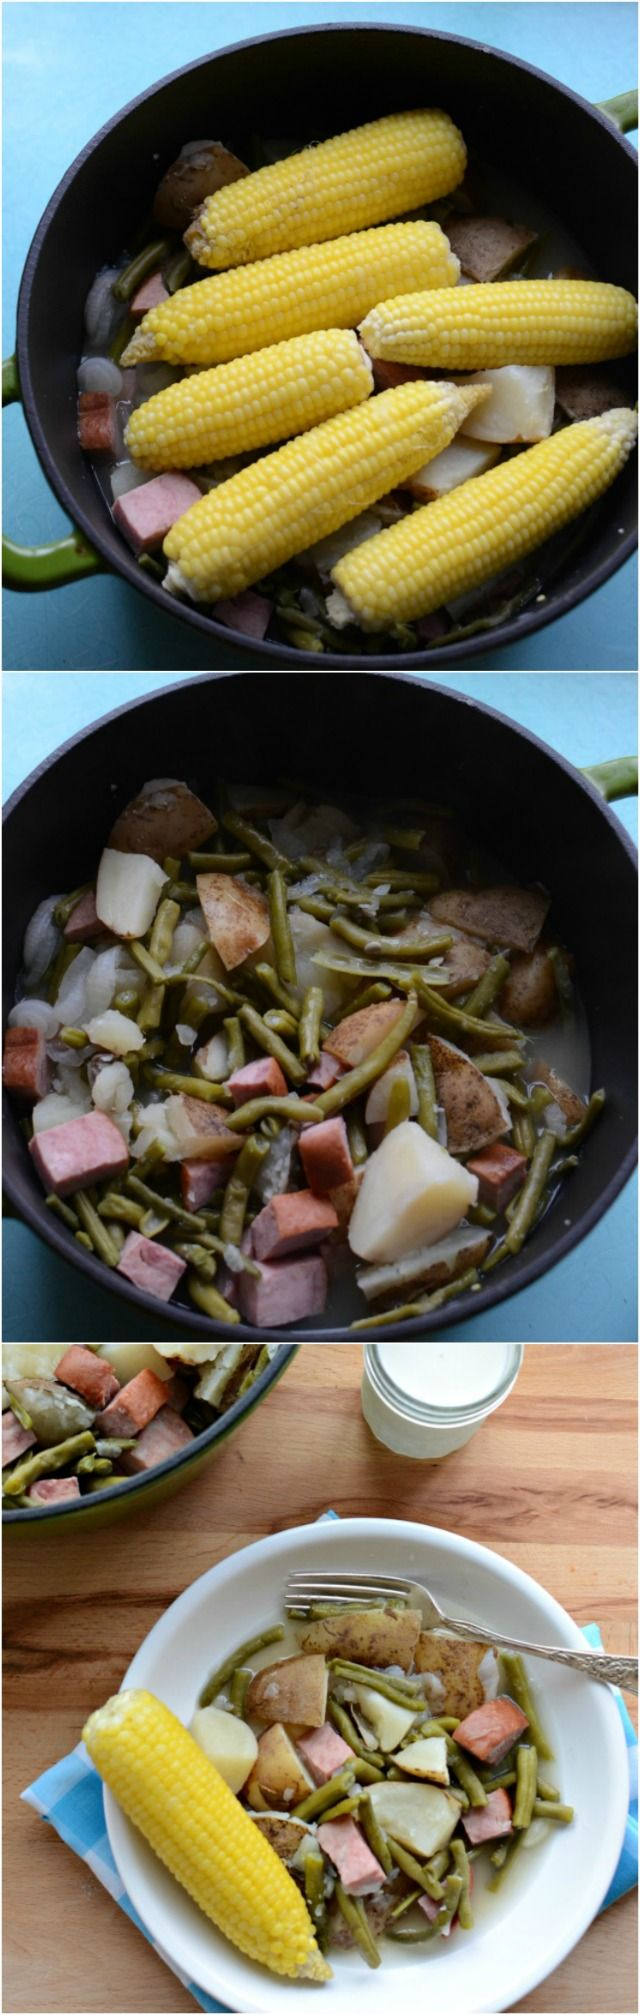 One of our very favorite One Pot Wonders! My kids gobble this up.